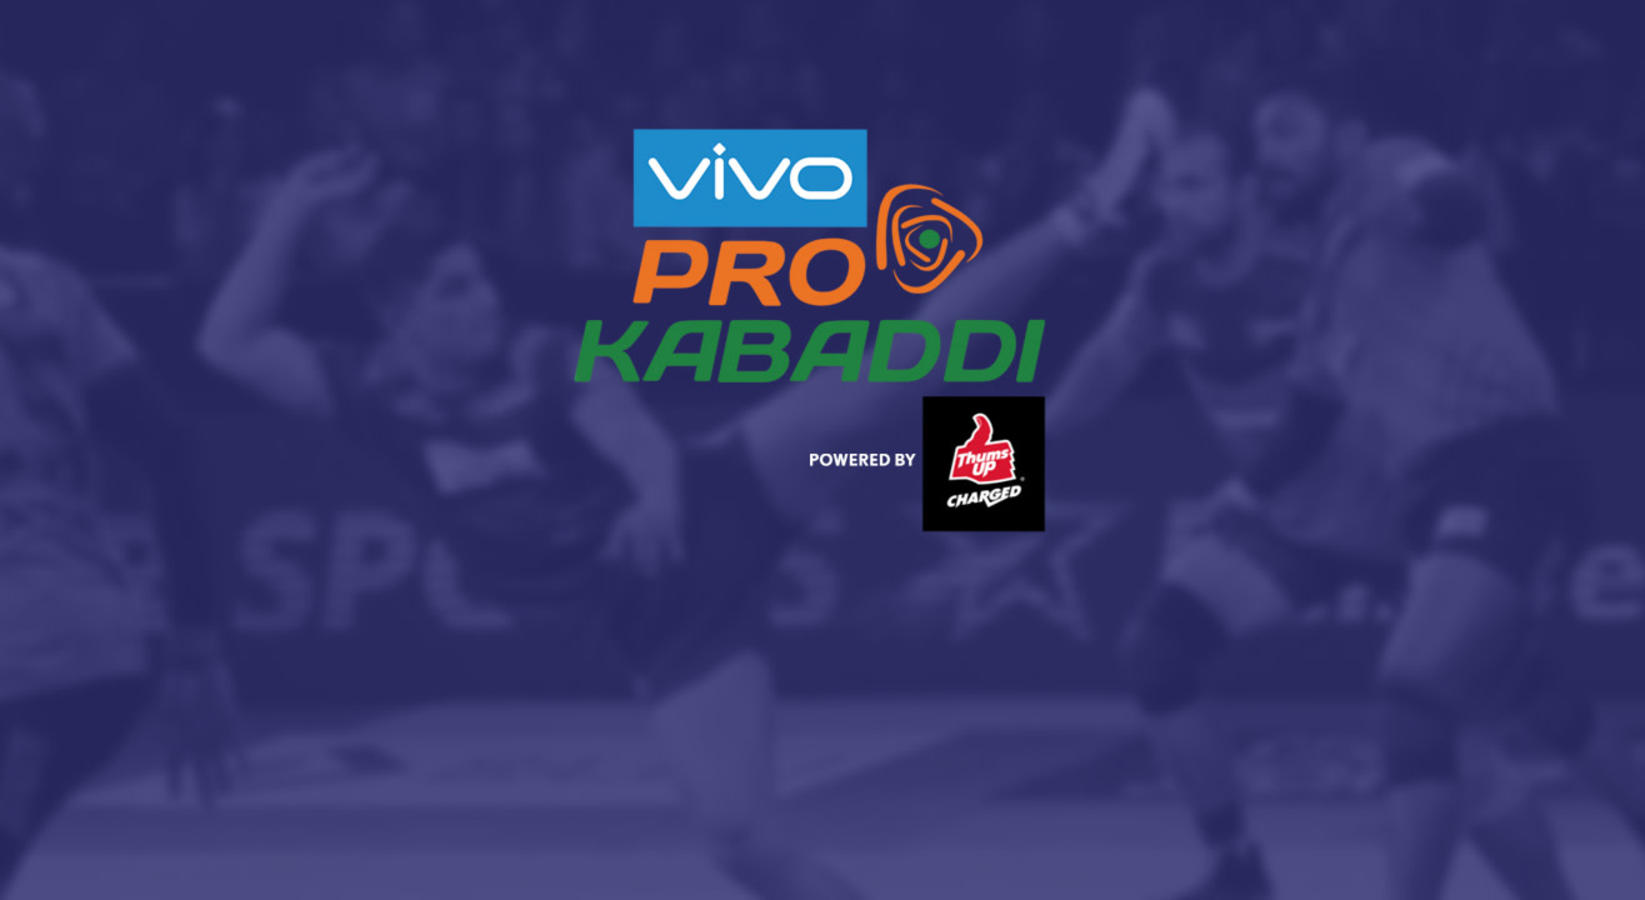 VIVO Pro Kabaddi 2018-19: Buy Match Tickets Online